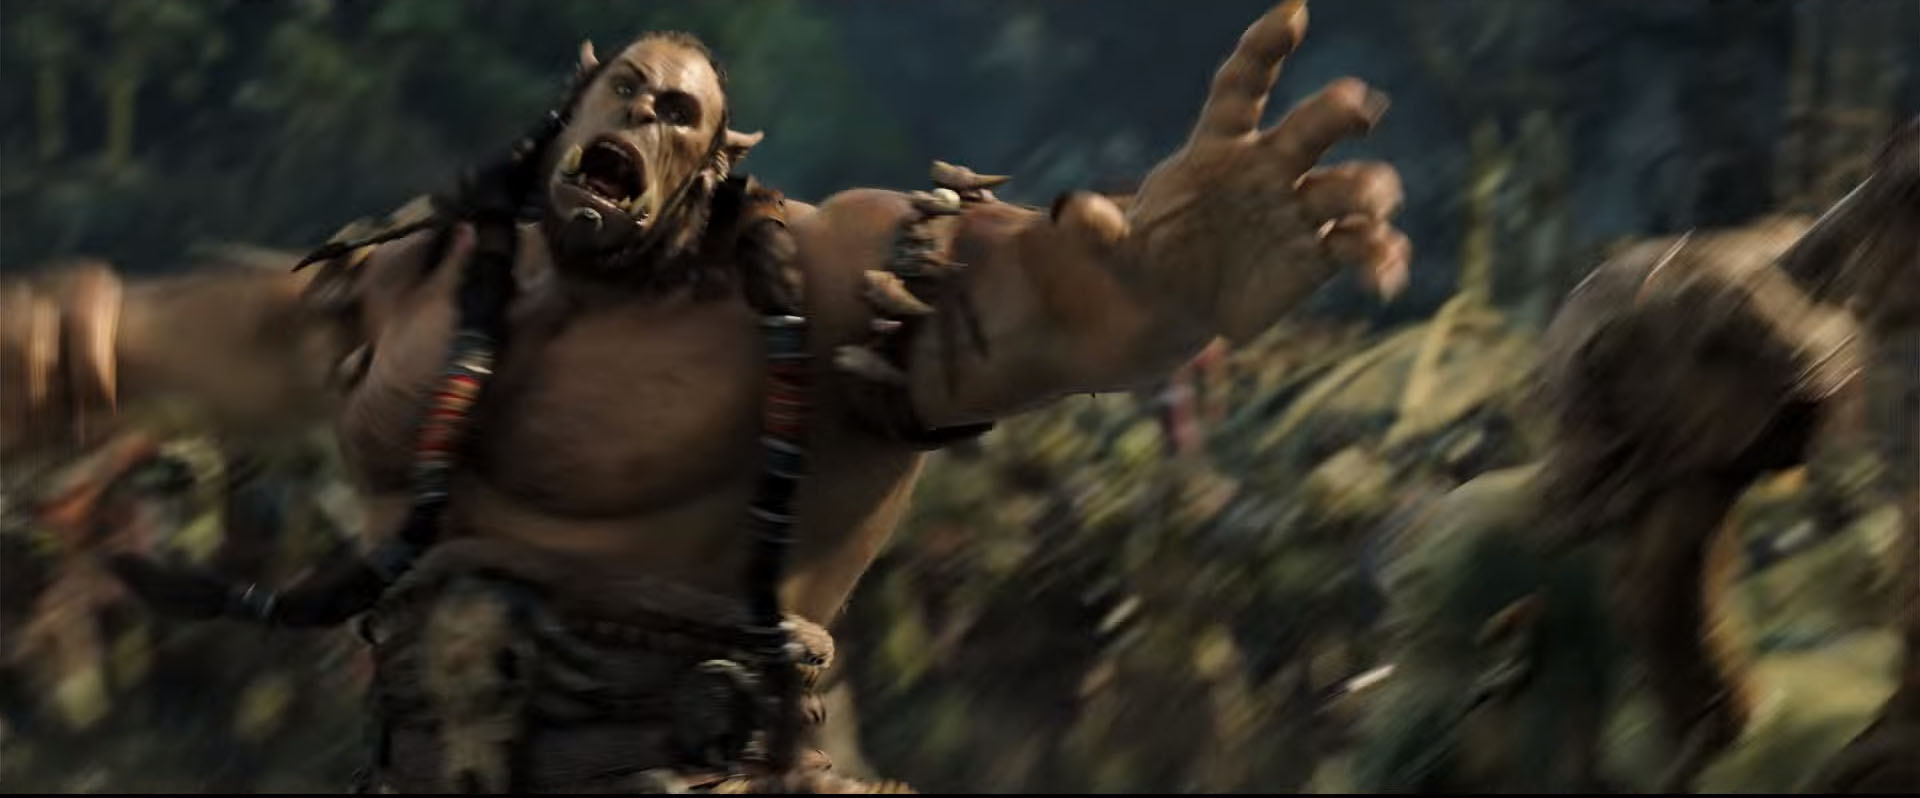 Differences between warcraft movie and lore